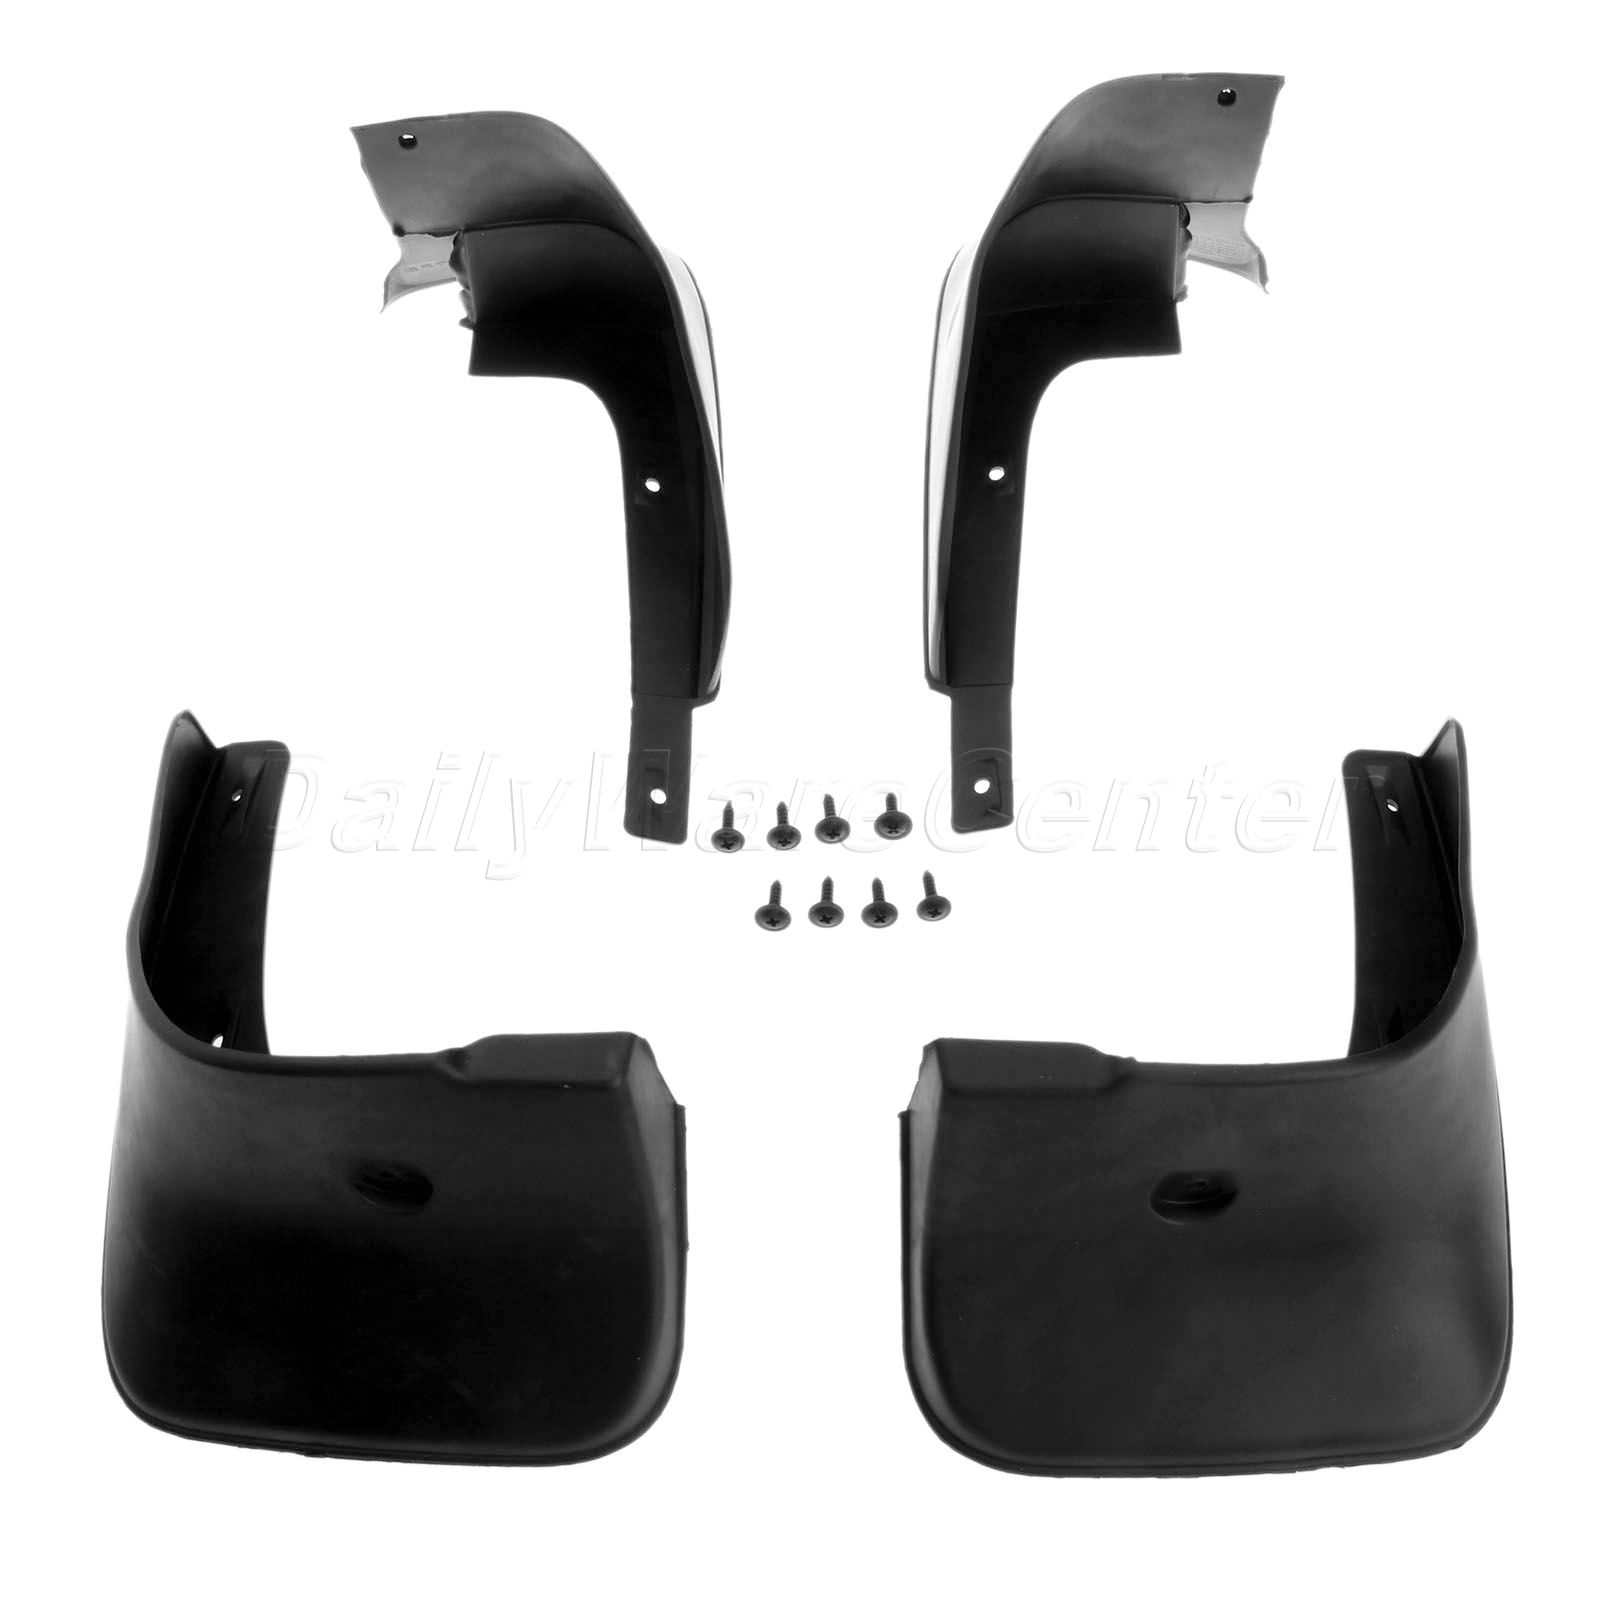 4pcs mud flaps on car mud guard fender splash guards for. Black Bedroom Furniture Sets. Home Design Ideas